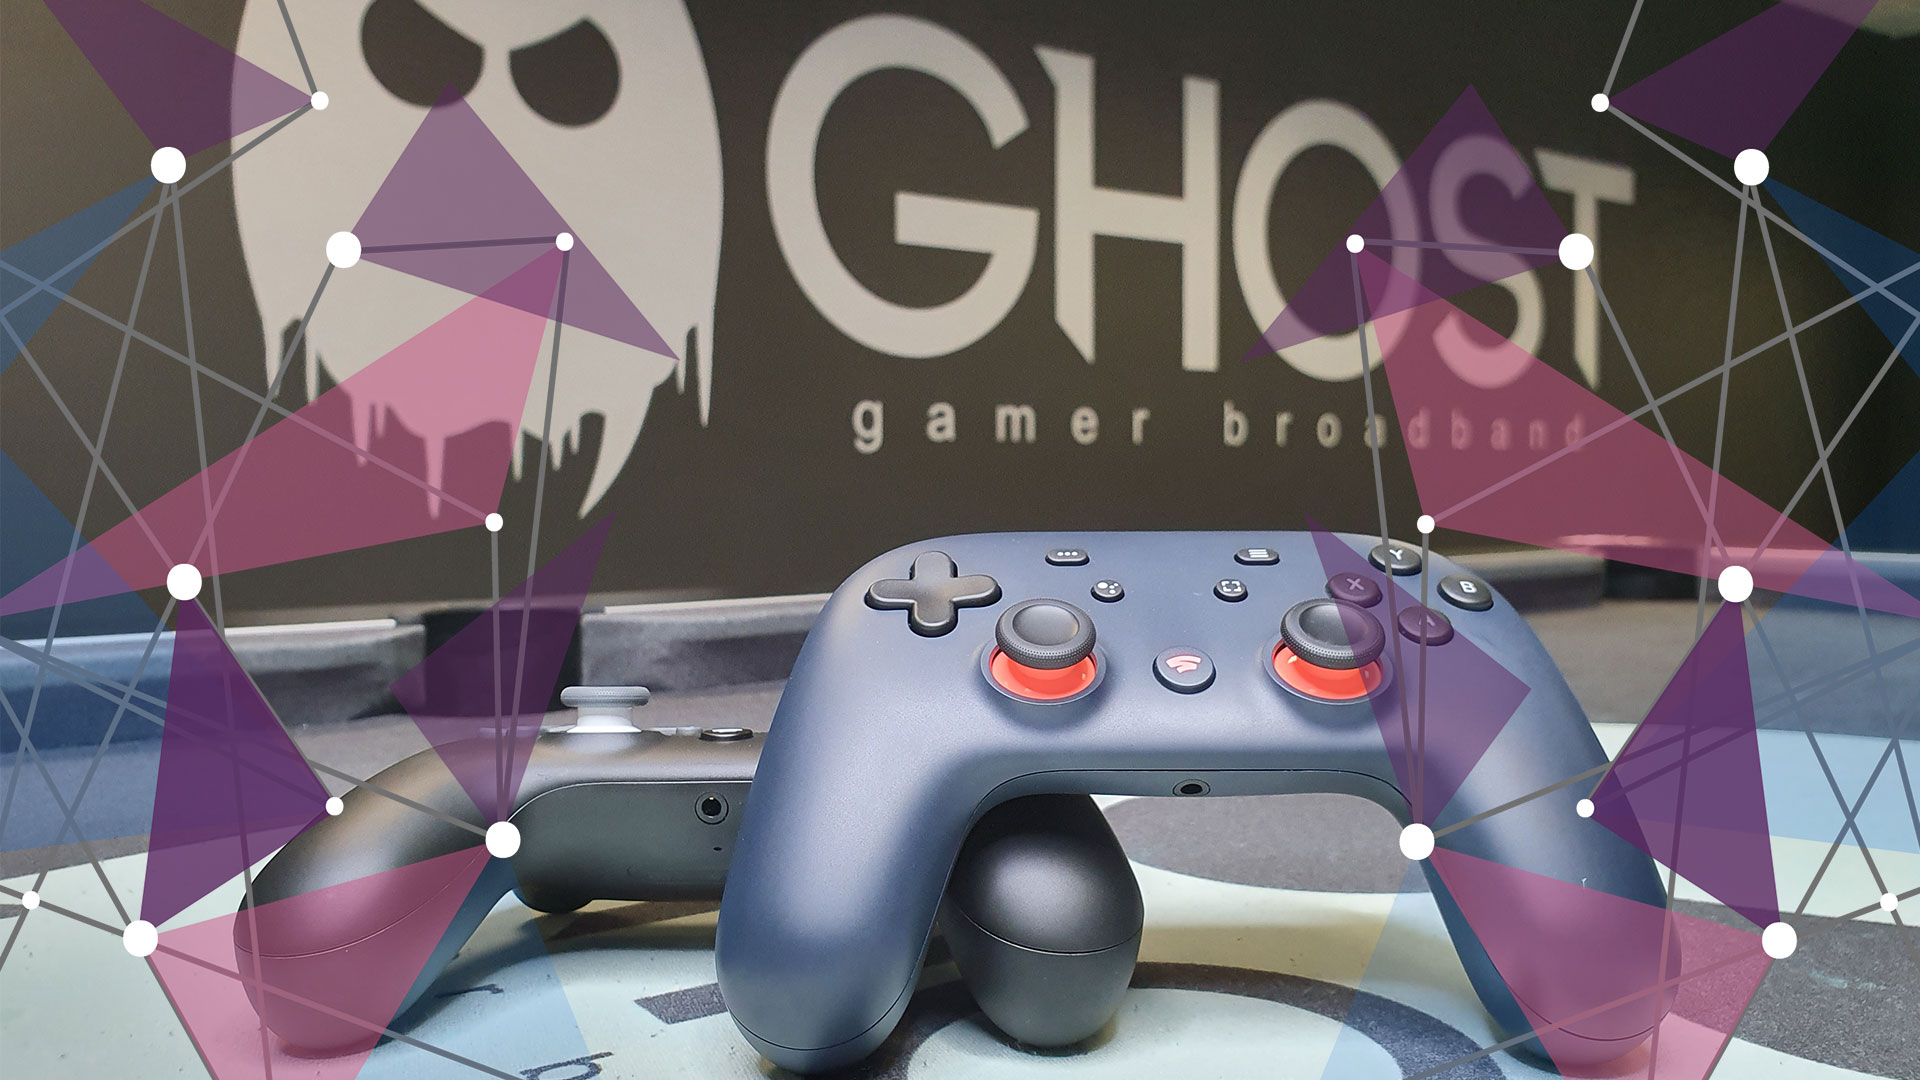 Google Stadia controller in midnight blue in Ghost Gamer Broadband offices